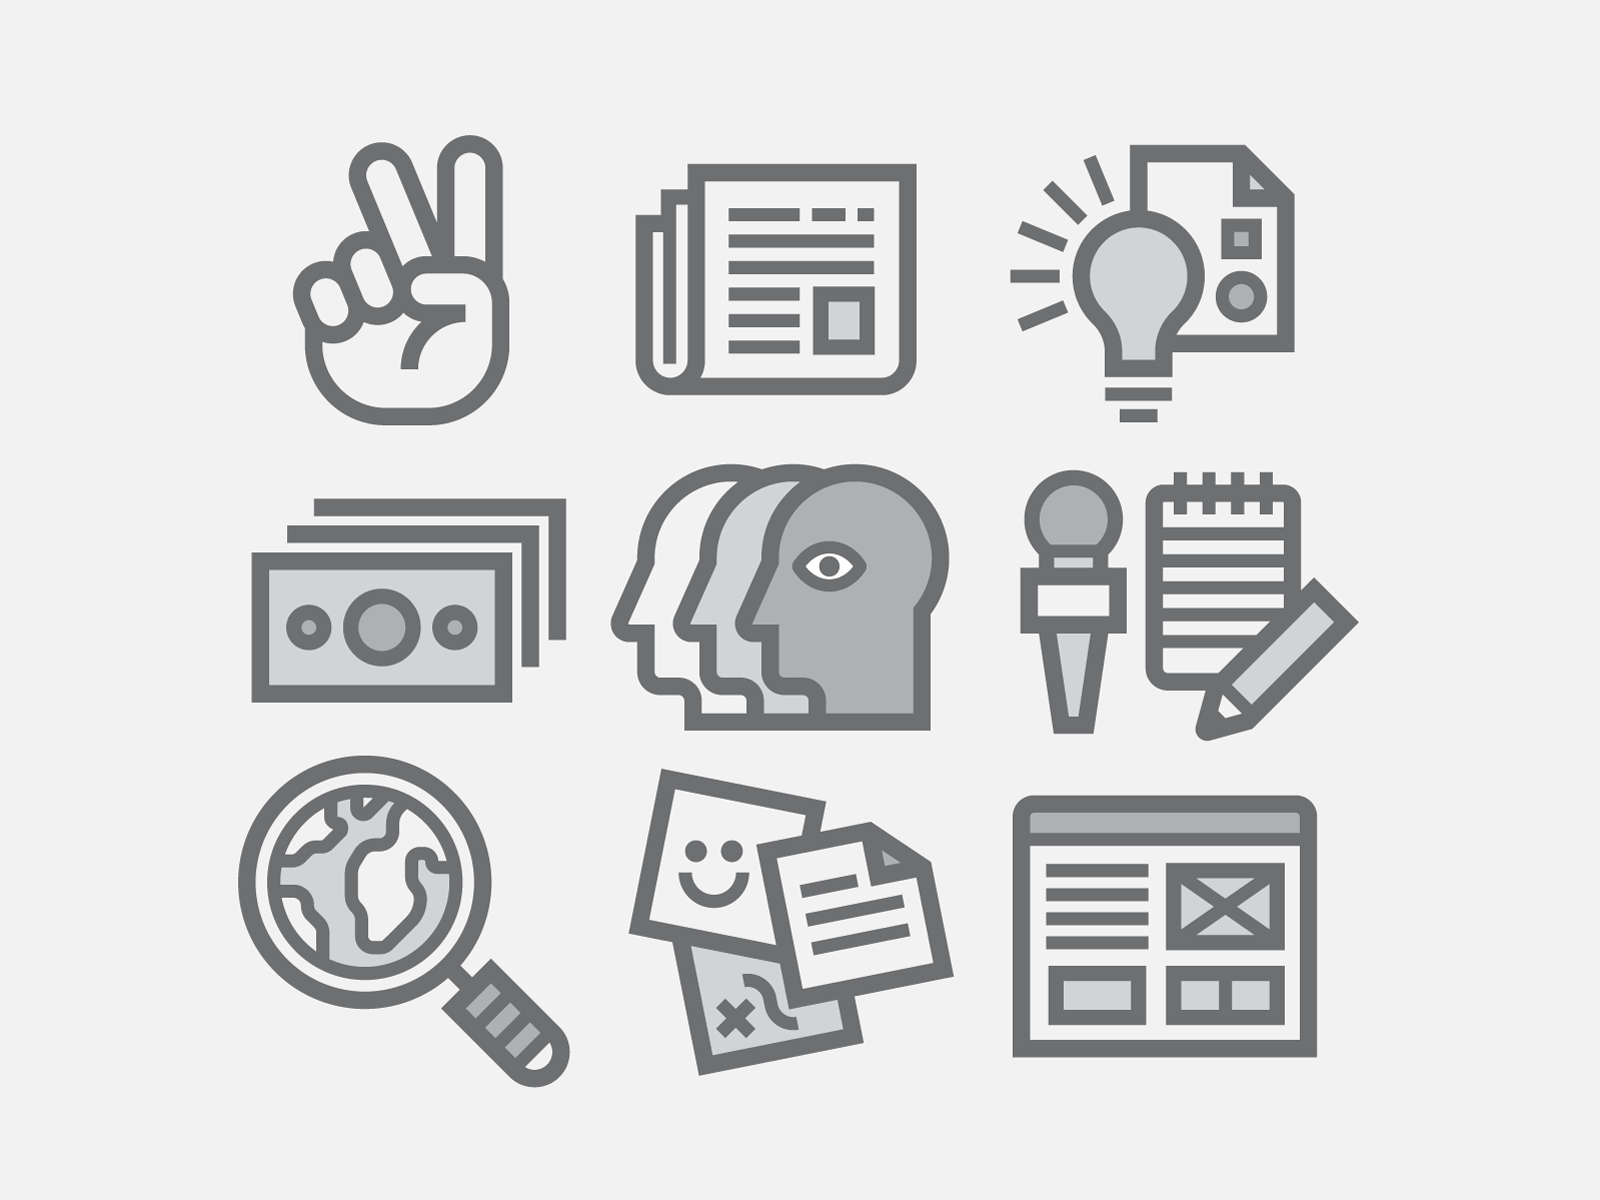 Icons, Icons, Icons!!! mic bulb people money world wire peace hand newspaper grey icons